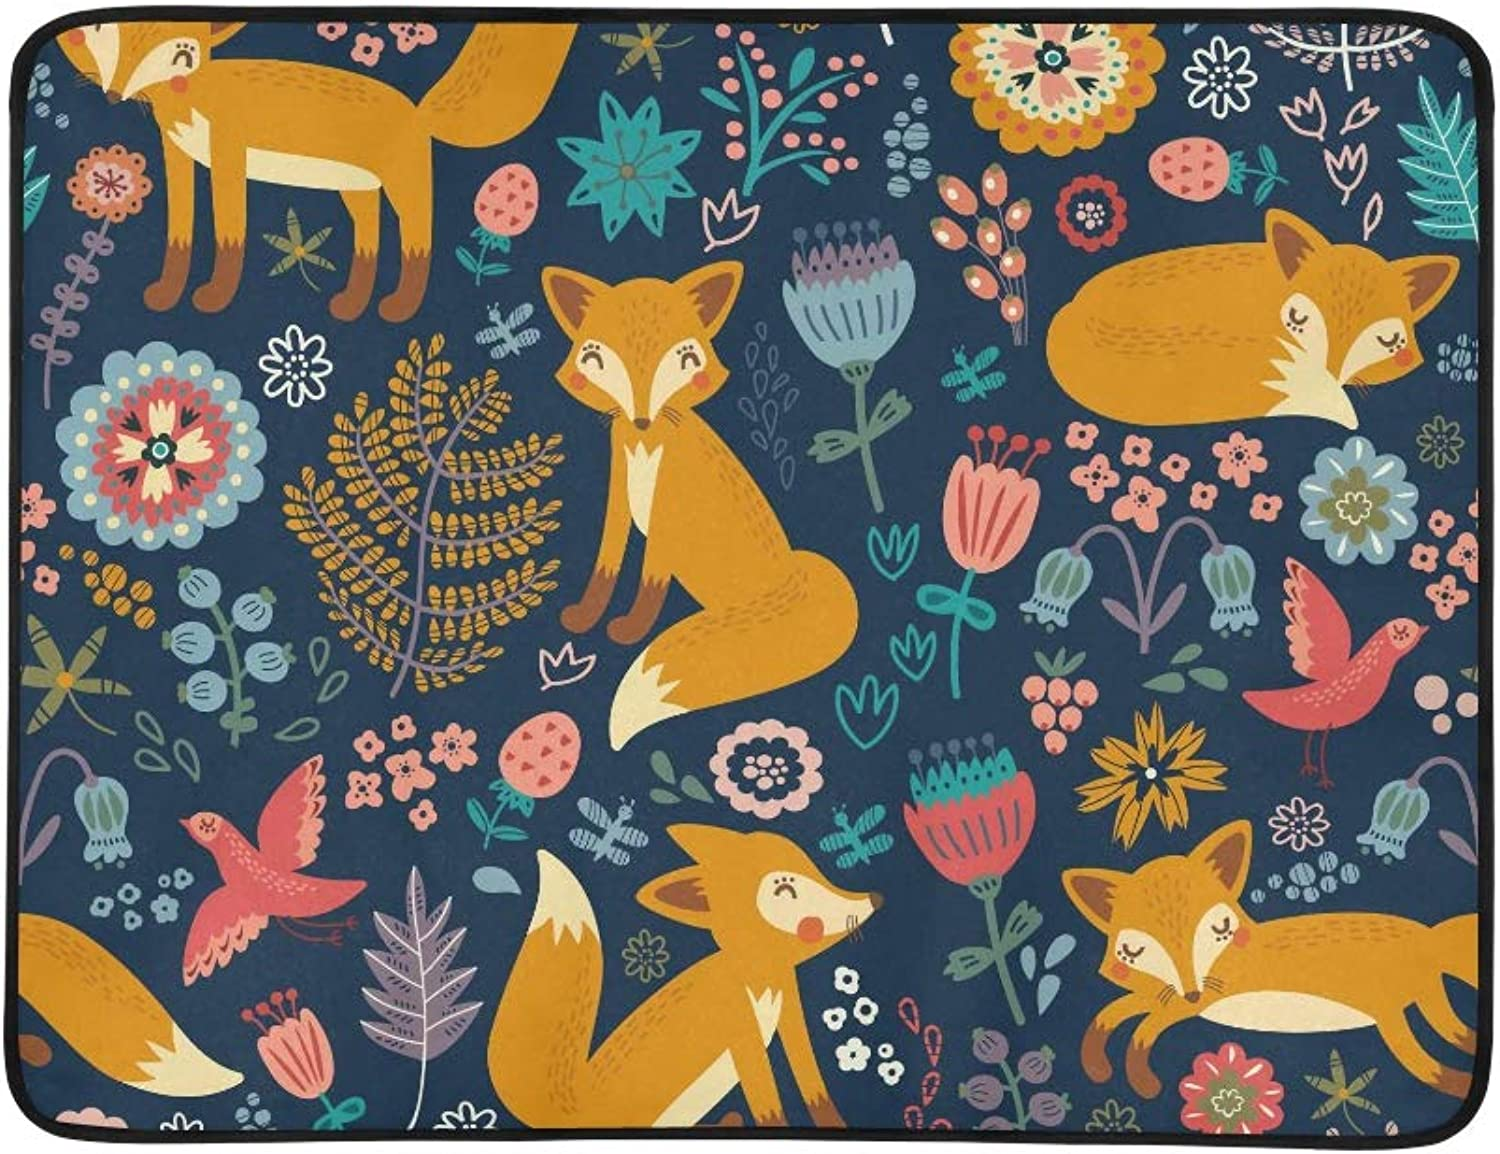 Cute Cartoon Fox Flower Bird Pattern Pattern Portable and Foldable Blanket Mat 60x78 Inch Handy Mat for Camping Picnic Beach Indoor Outdoor Travel